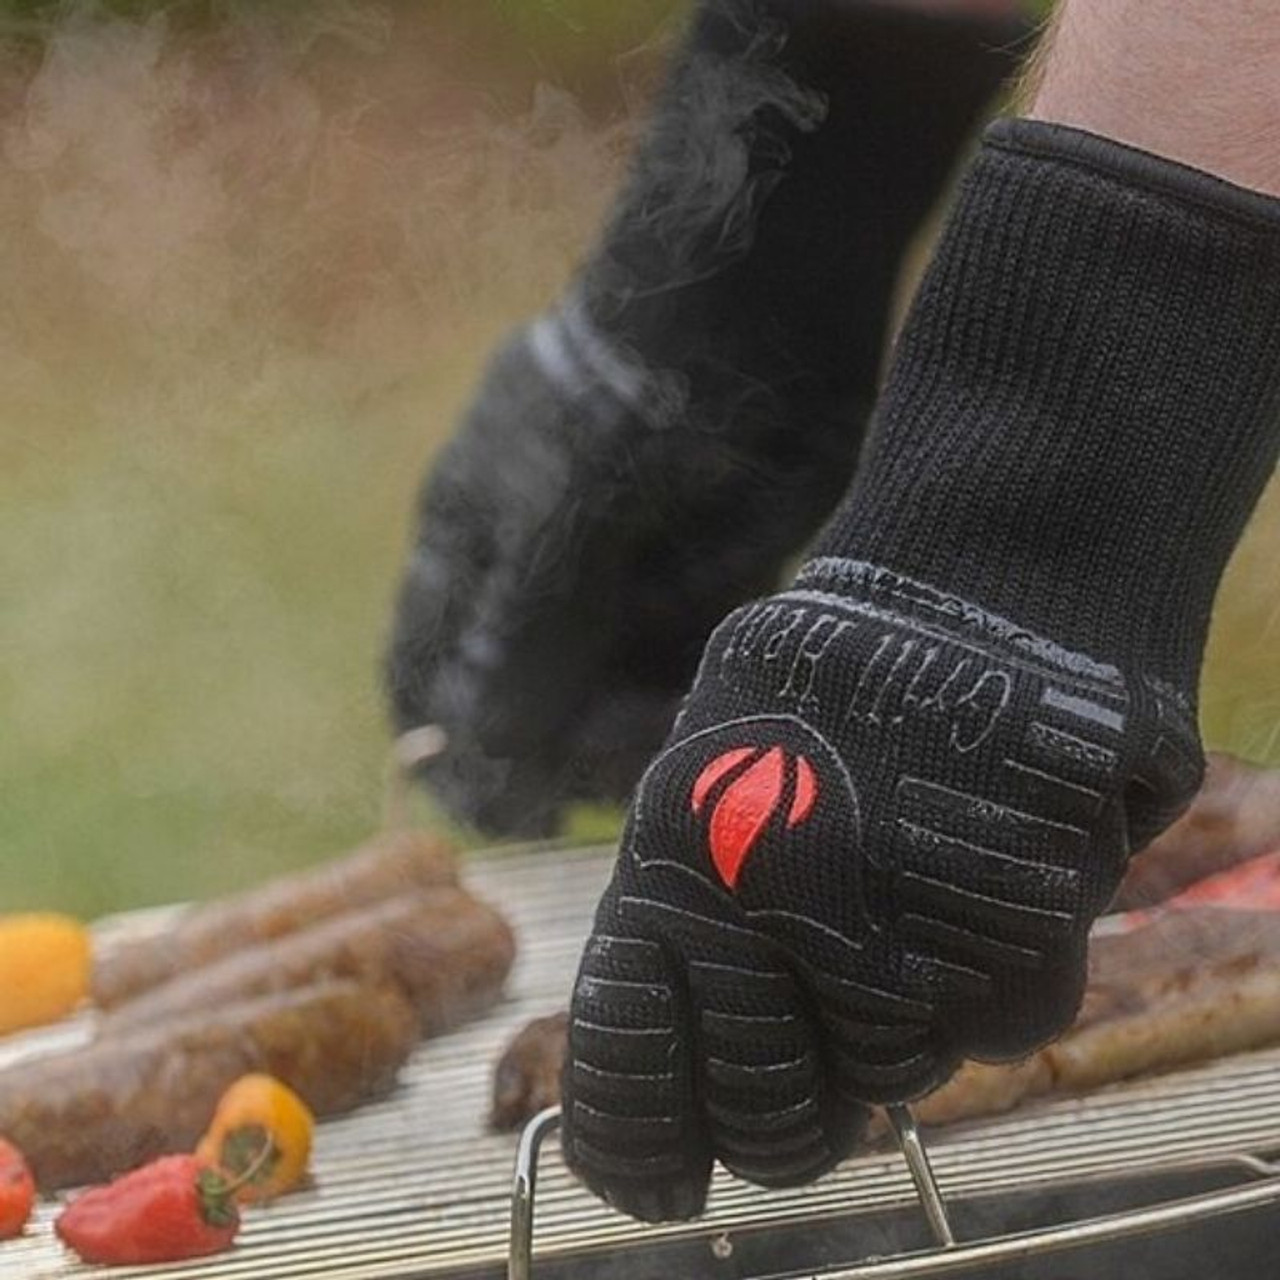 BBQ Heat Resistant Glove for Grilling